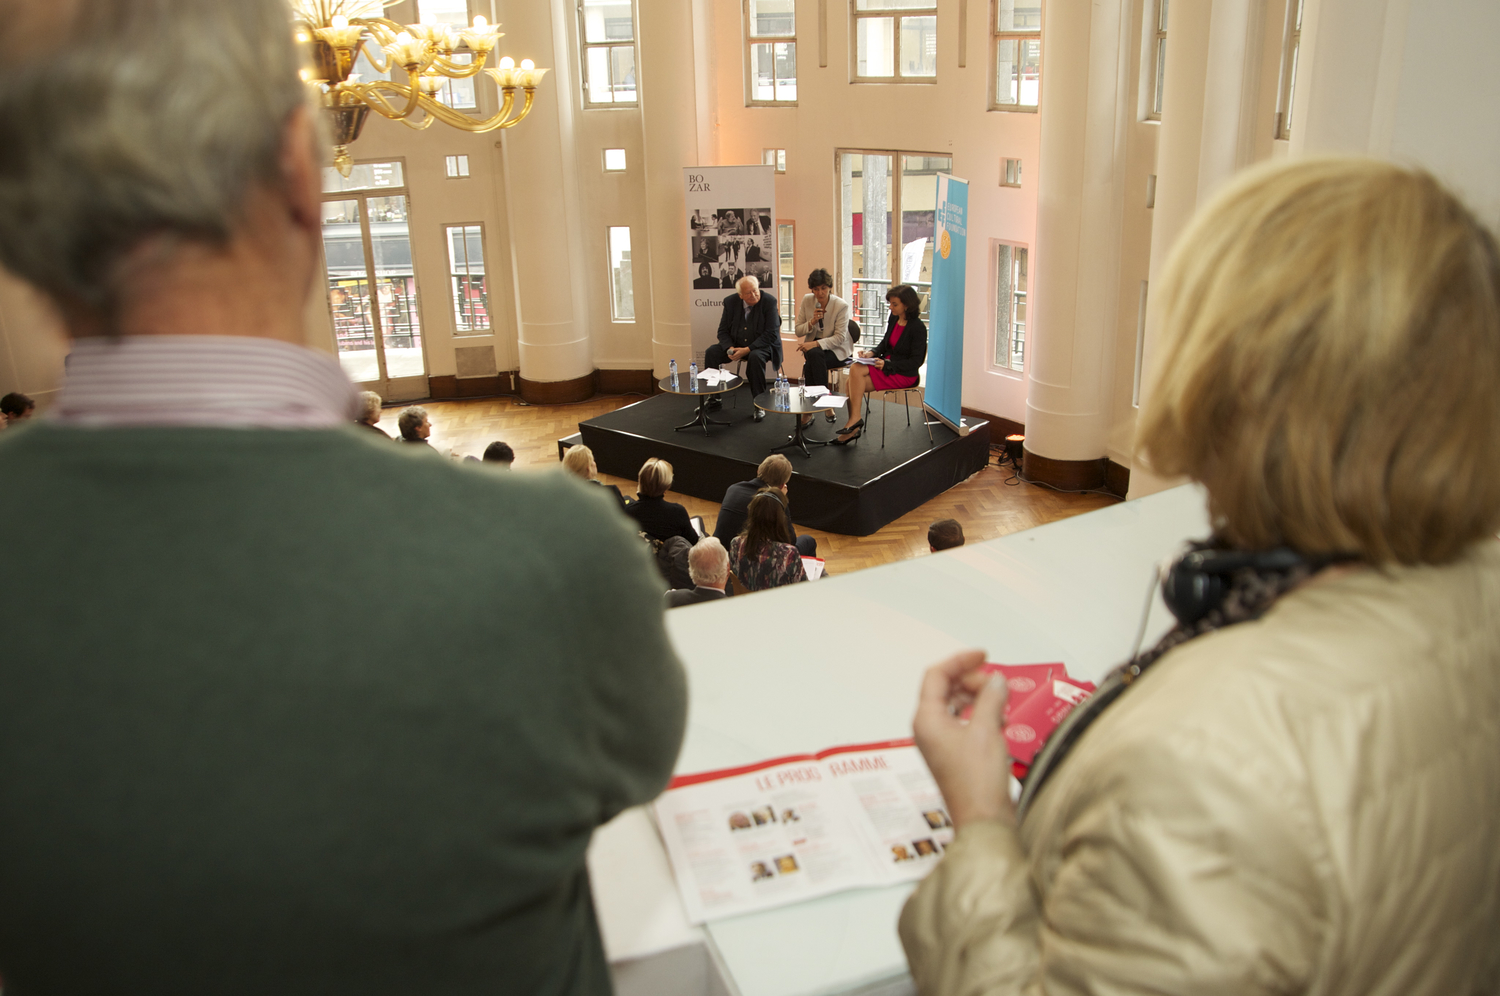 The Historic Speech to Europe debateat BOZAR. Photo by Yves Gervais.